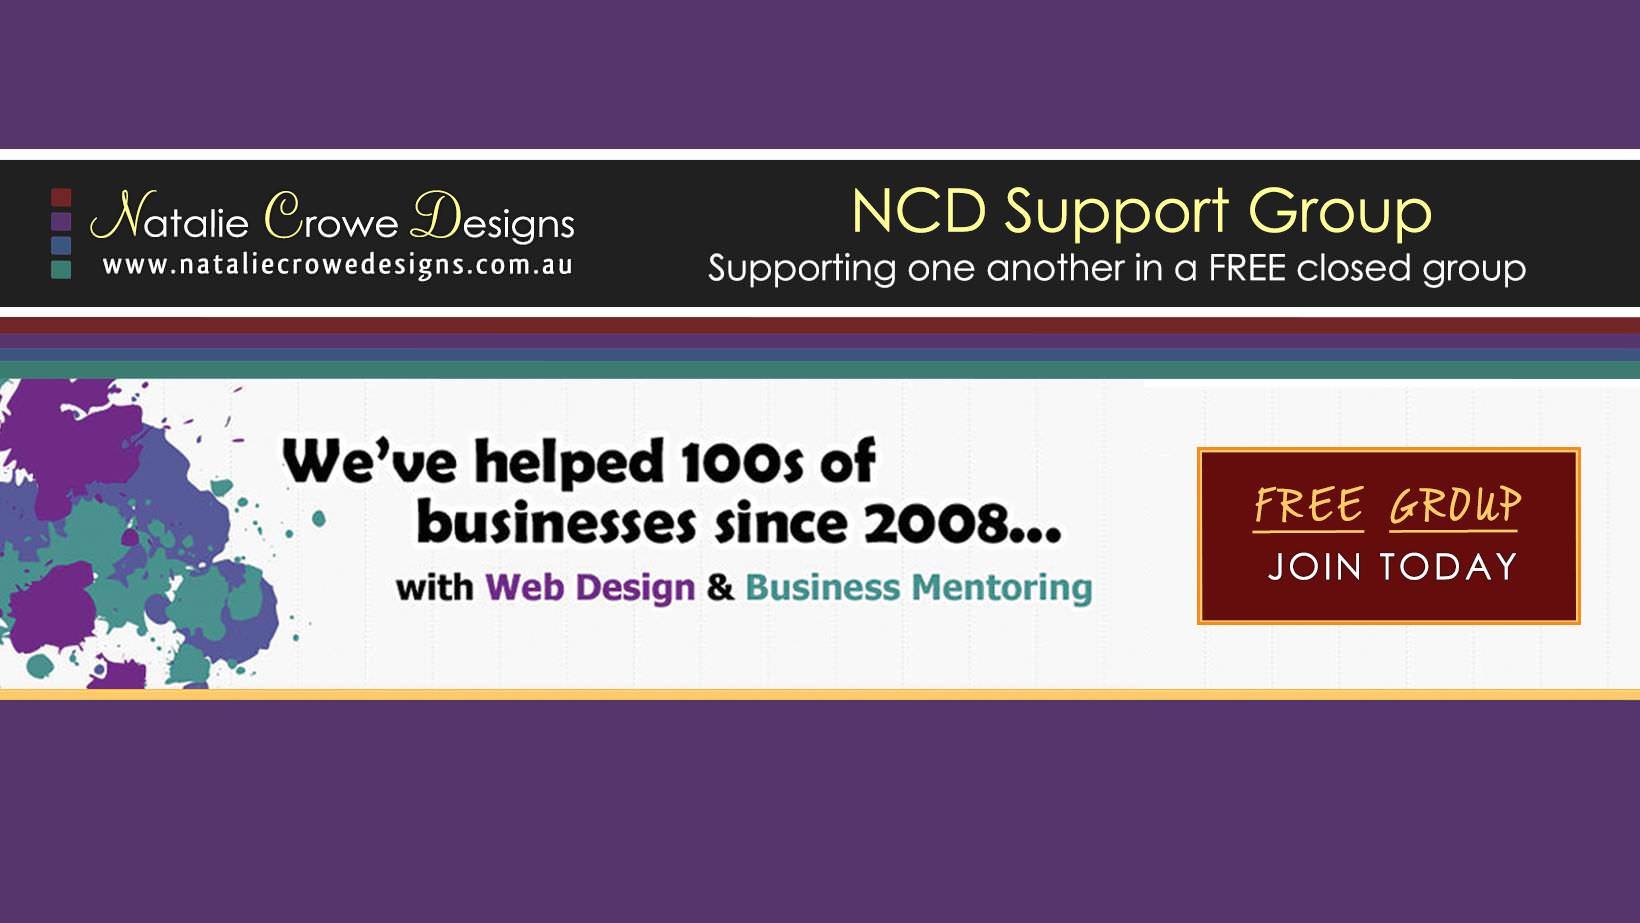 Natalie Crowe Designs Business Support Group